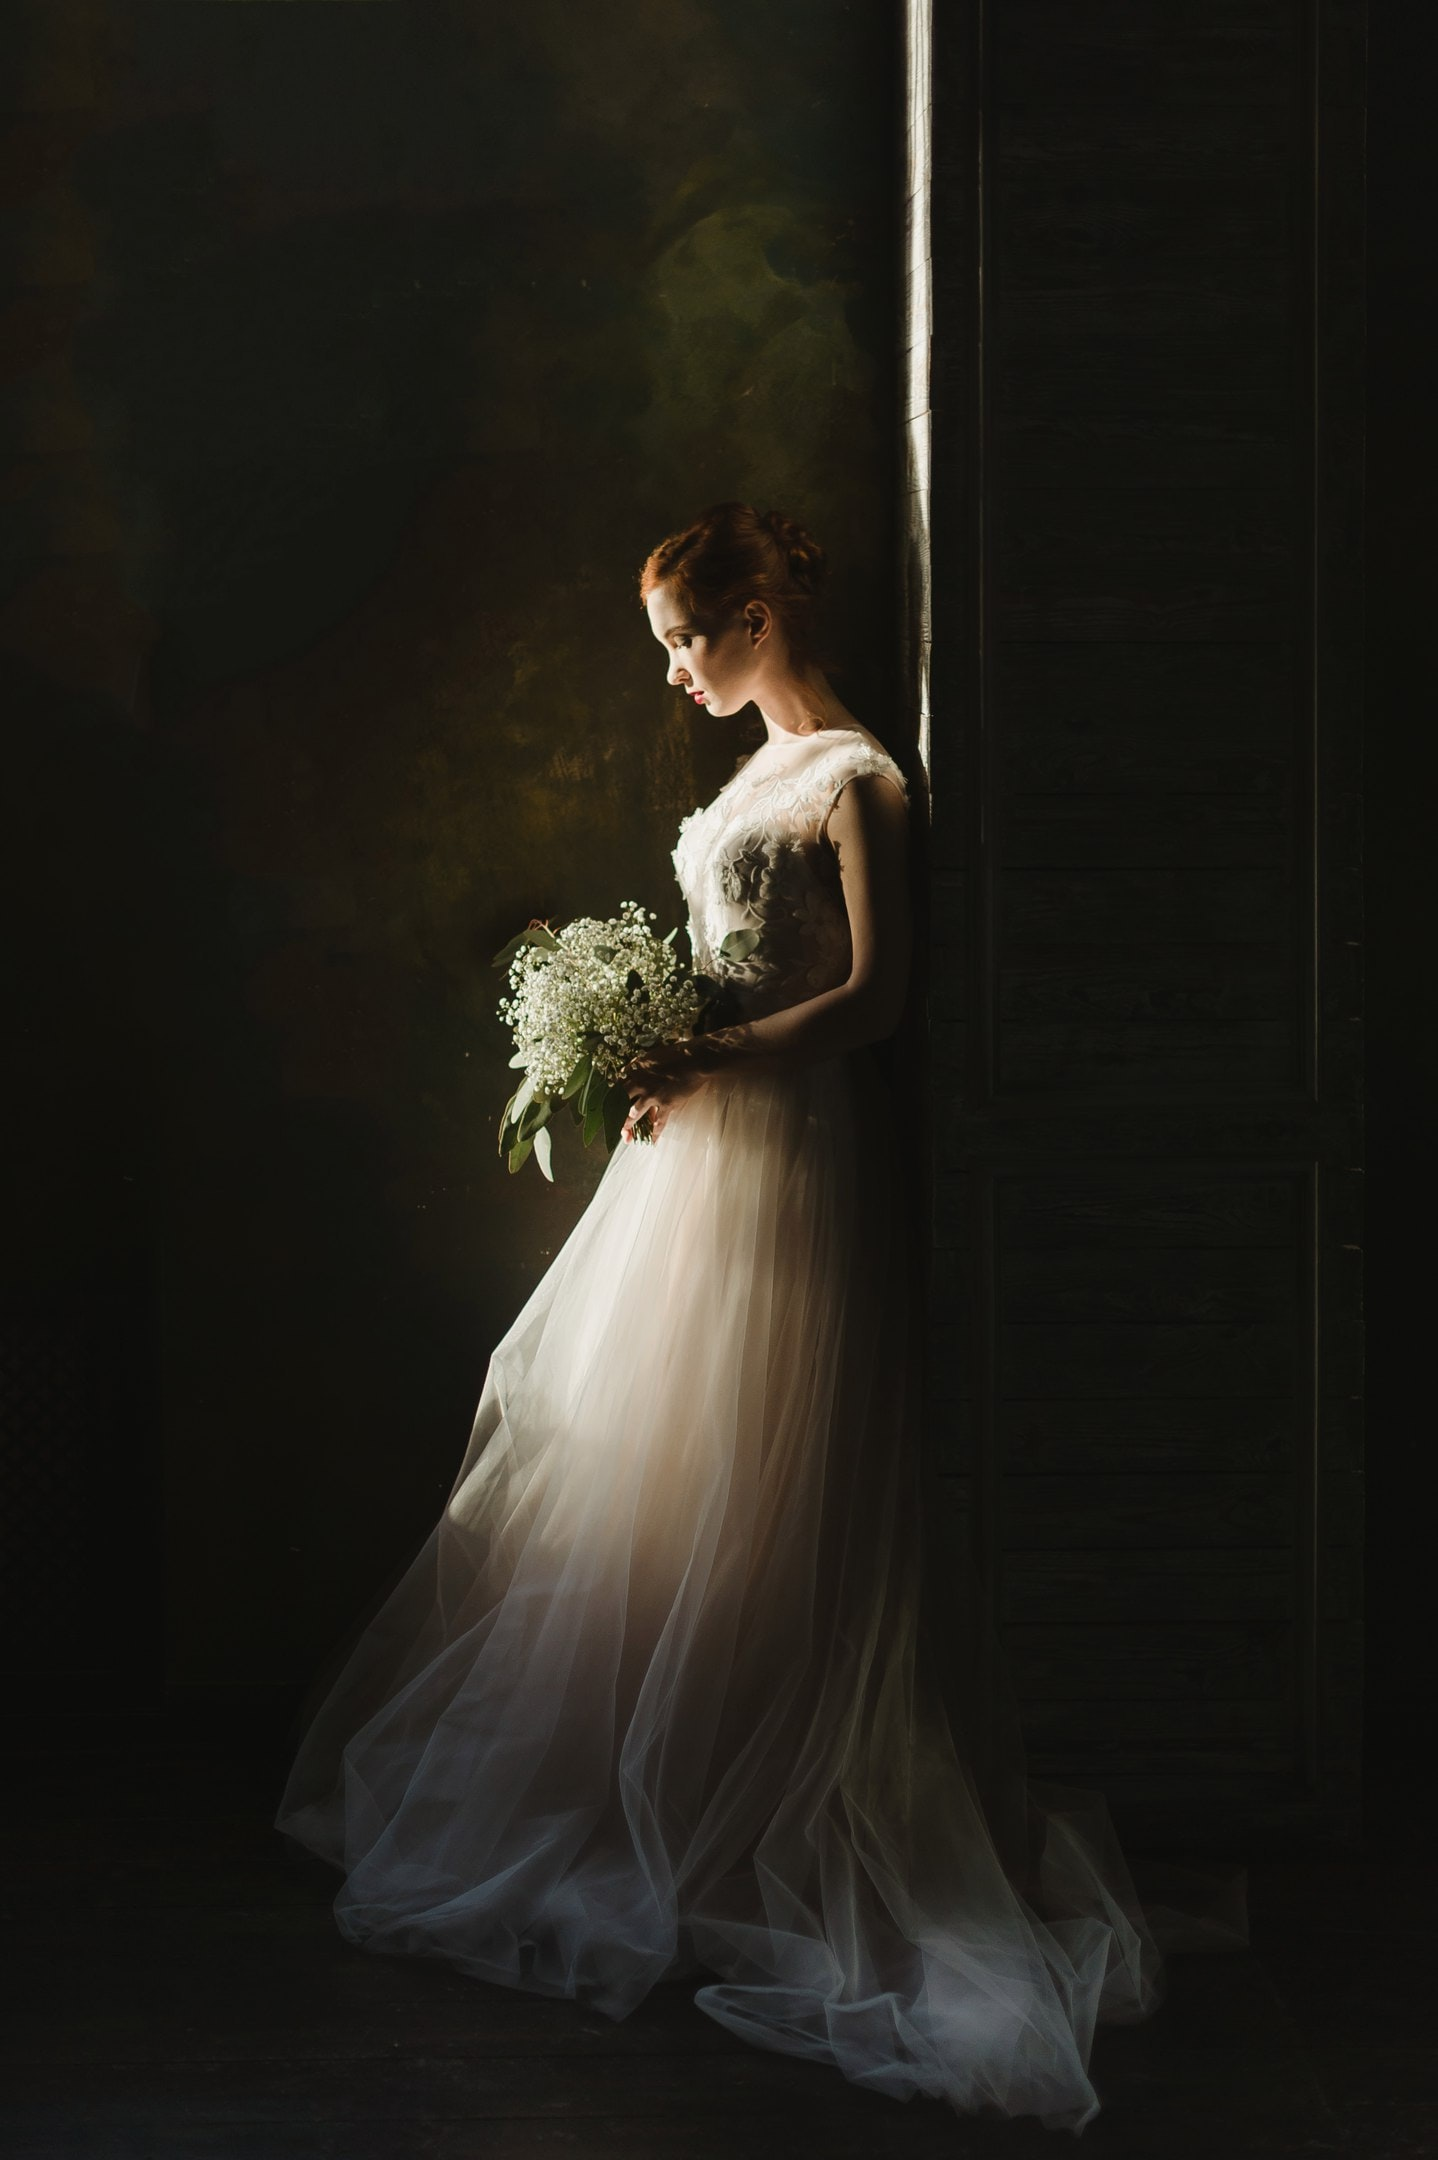 Bride in a wedding gown with a floral bouquet stands in the shadows